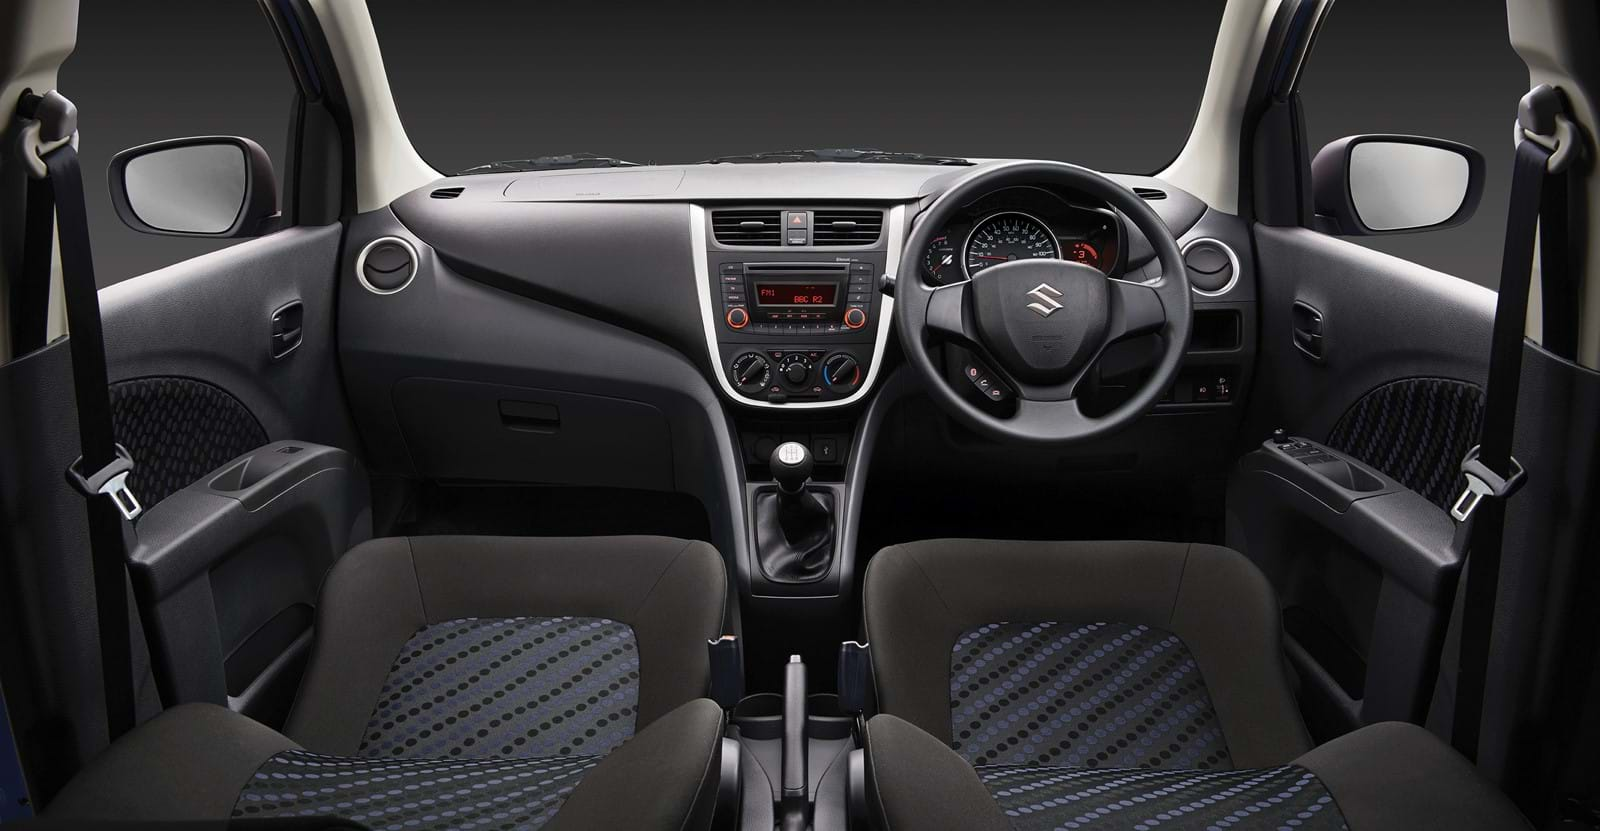 Suzuki has maintained its reputation in the vehicle market and its cultus is one of the most popular hatchback family cars in the world. Suzuki cultus is known as Celerio worldwide. It is an efficient and successful car in terms of sales and quality. The company introduced the 3rd generation cultus in Pakistan on 22nd April 2017. After the success, the company revived the vehicle with better design, framework, and more enhanced features. In November 2020, the company launched the new Suzuki cultus in three variations VXR, VXL, and Auto Gear Shift which is 1000cc and an efficient choice in terms of family use. If the new Suzuki Cultus 2020 is your preference for buying a new car, then have a look at all the specifications and upgrades in the latest model to find out which variant you should go for. Suzuki Cultus 2020 - Overview The growing trend of hatchback cars in the country enforced the need for Suzuki to manufacture this new model in 1000cc which is good-looking and cost-efficient as well. It runs on petrol with a tank capacity of 35 liters. It runs 16Km/L in the city and 20KM/L on highways. This new model is available to the customers in the range of PKR 1,780,000 to PKR 2,030,000. Suzuki cultus comes in front-engine and front-wheel driving features with three engine variants: VXR, VXL, and AGS. Enhanced features are installed to sustain in the competitive market like airbags, power steering, power windows, fog lights, and anti-lock braking. This latest model is expected to hit the market hard with success. Exterior This new model of the Suzuki cultus has a modern and solid hatchback framework that has no resemblance to the old cultus. This new cultus is much bold with attractive and sleek cuts and a solid build. There is an angular shaped chrome grill in the front, that holds the company's logo, between the sleek headlights that extend to the corners. There are circular shaped fog lights underneath the headlights. The rear side has trapezium-shaped taillights.